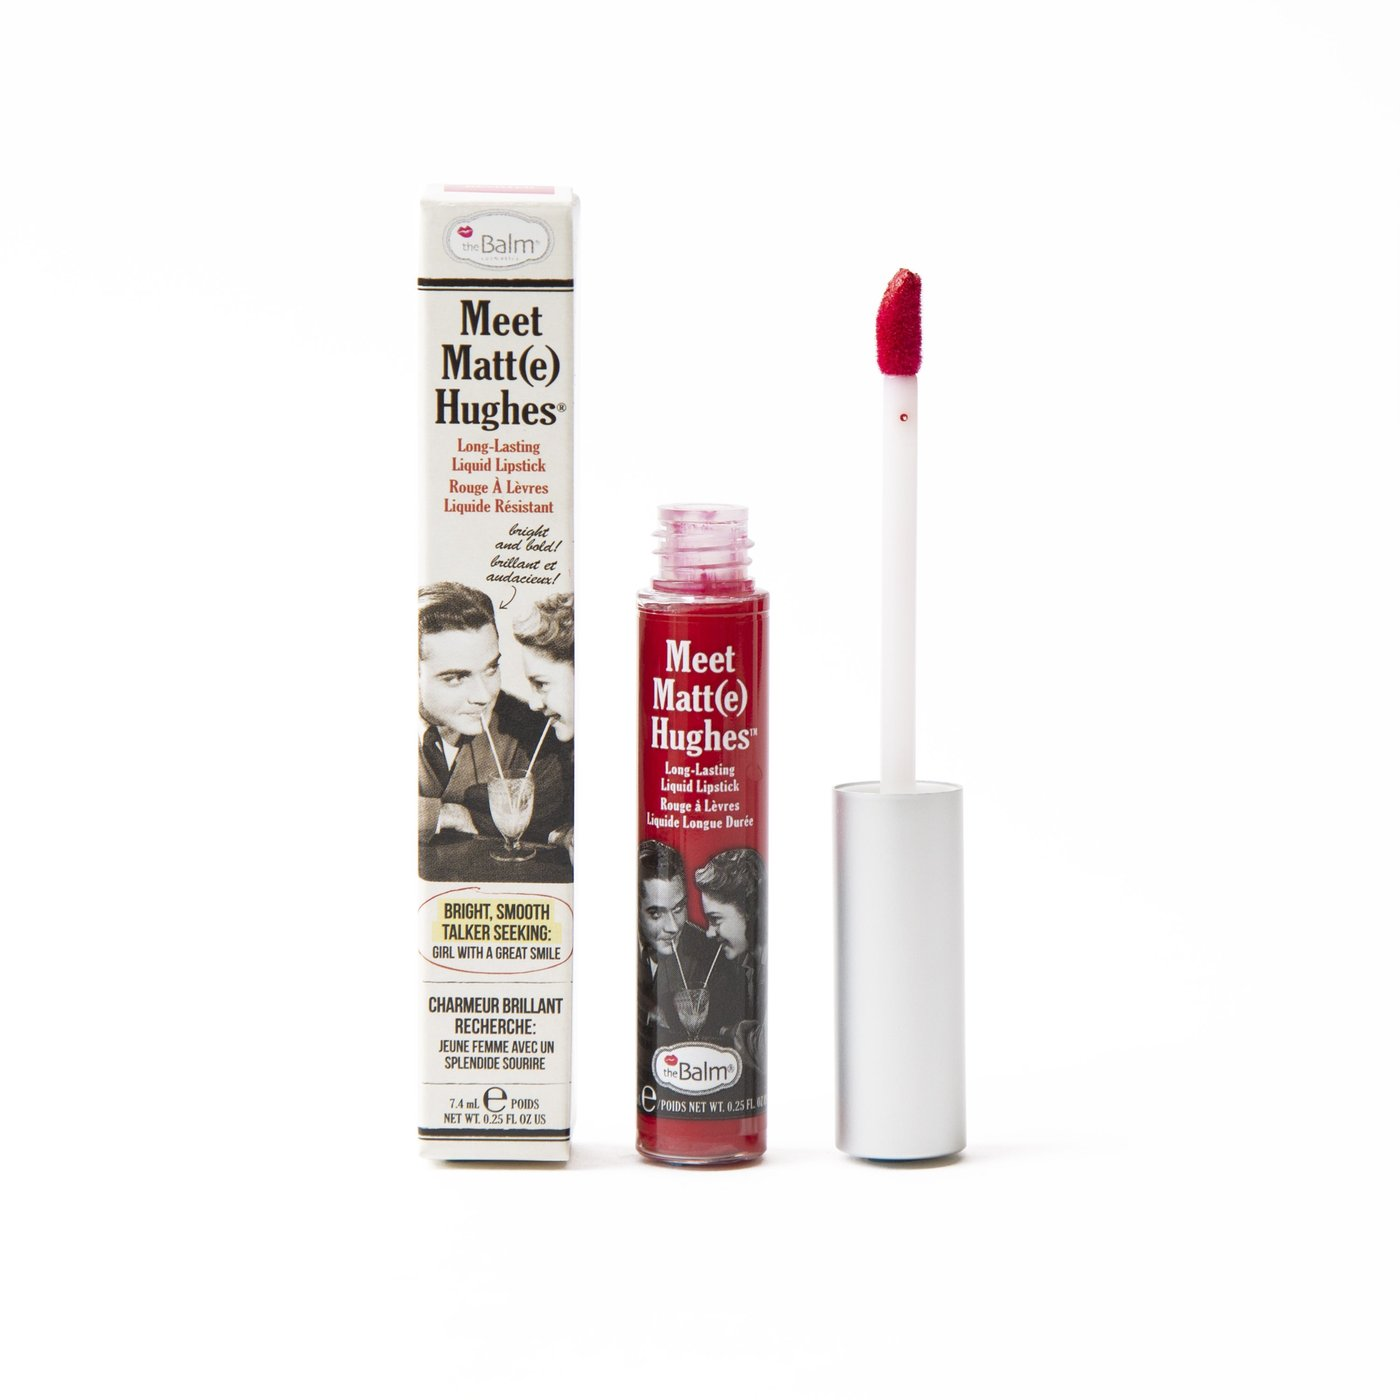 theBalm Meet Matte Hughes Long Lasting Liquid Lipstick - Devoted